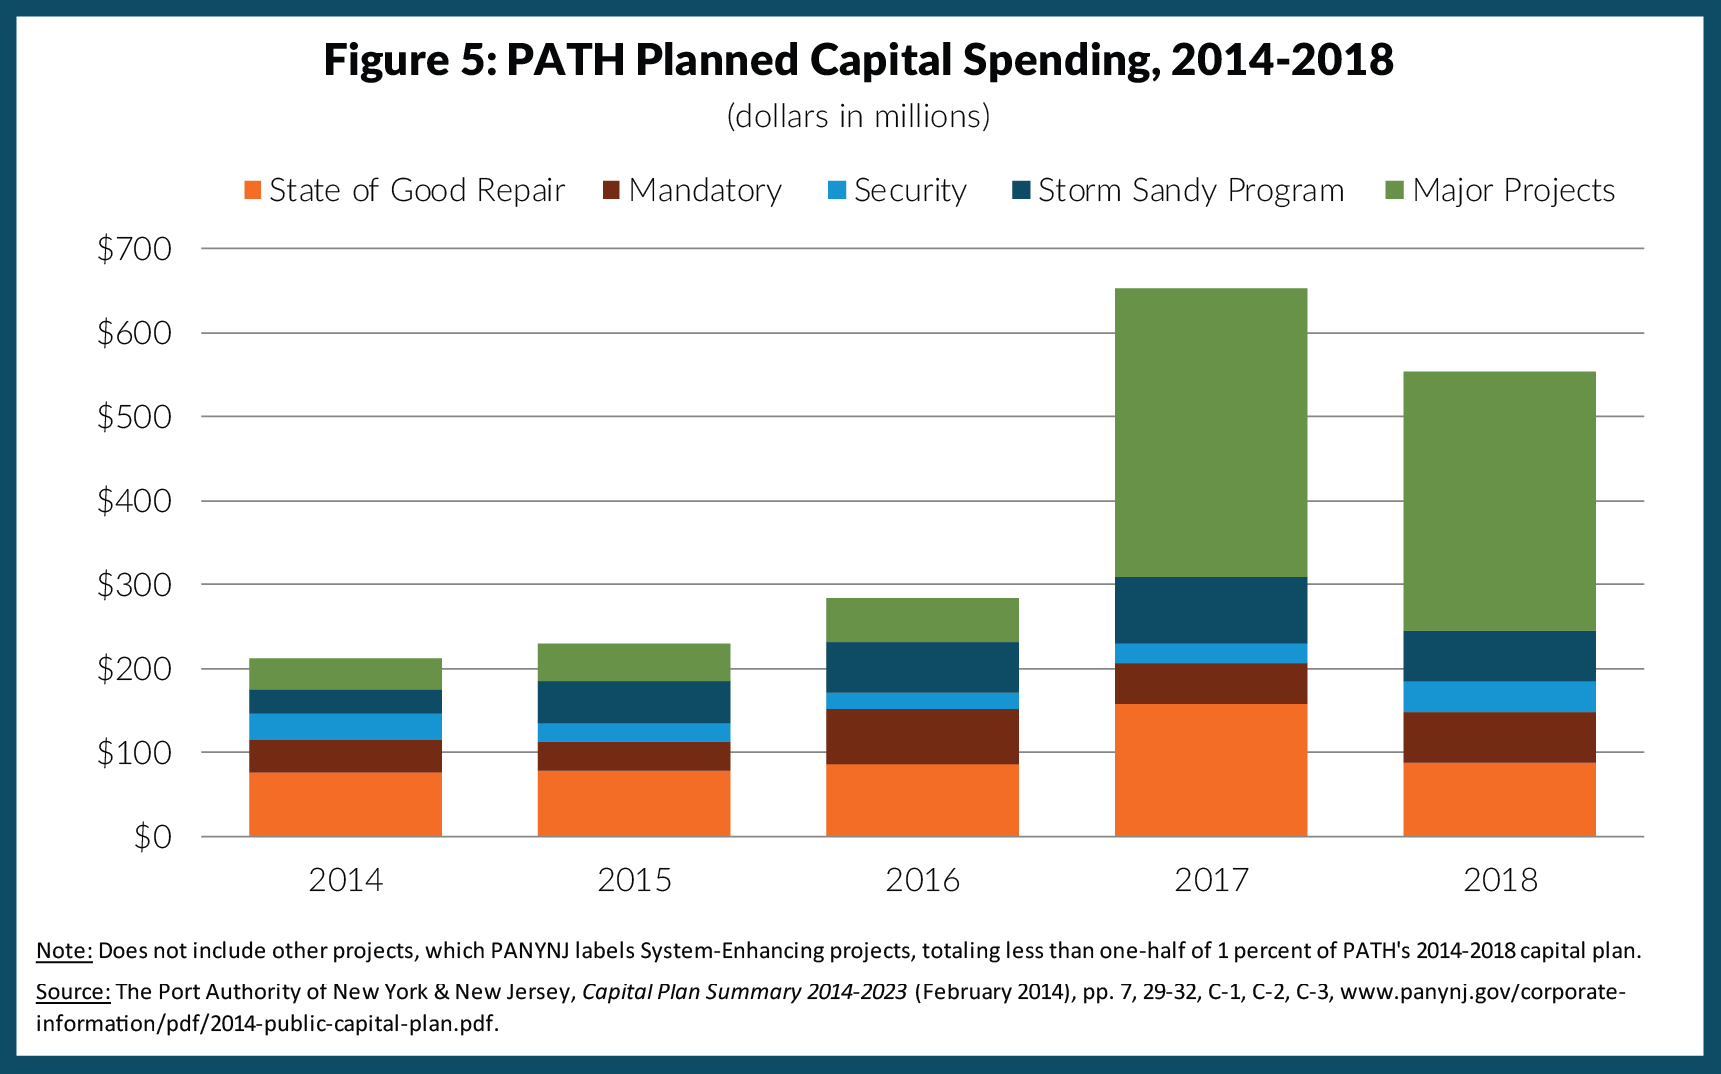 Figure 5: PATH Planned Capital Spending, 2014-2018